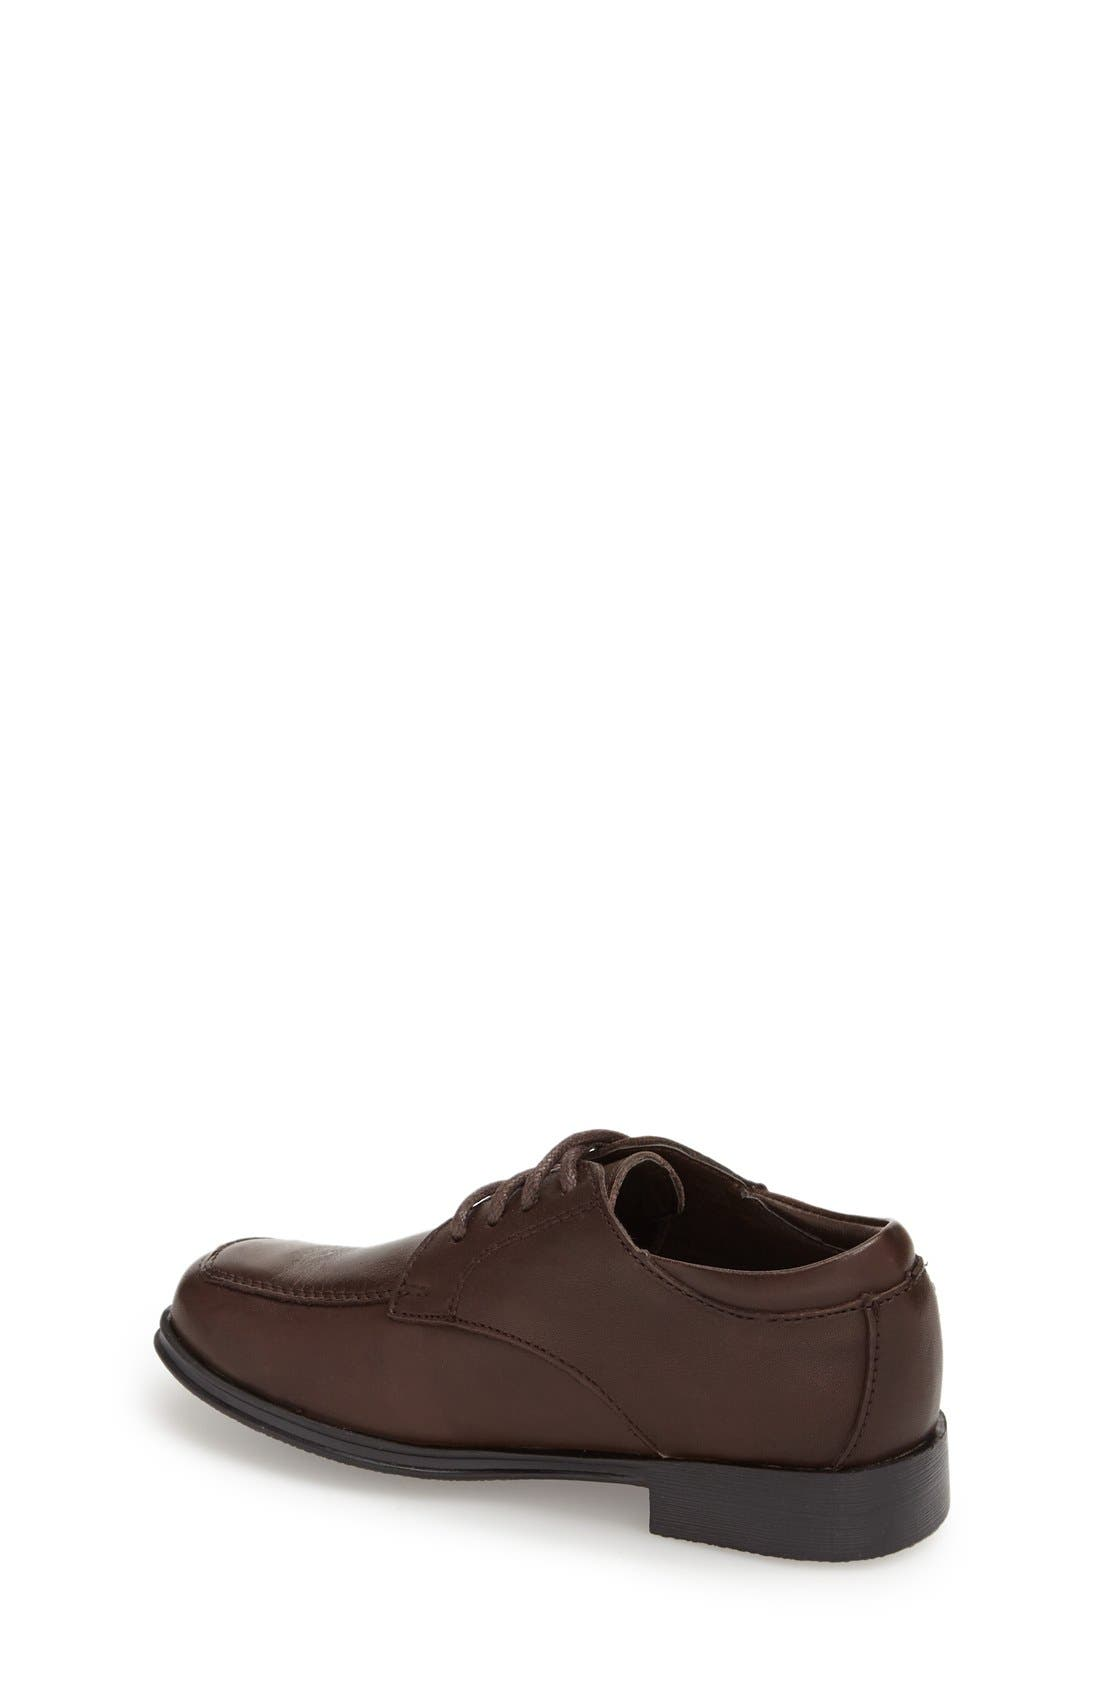 REACTION KENNETH COLE, Kid Club Loafer, Alternate thumbnail 4, color, DARK BROWN